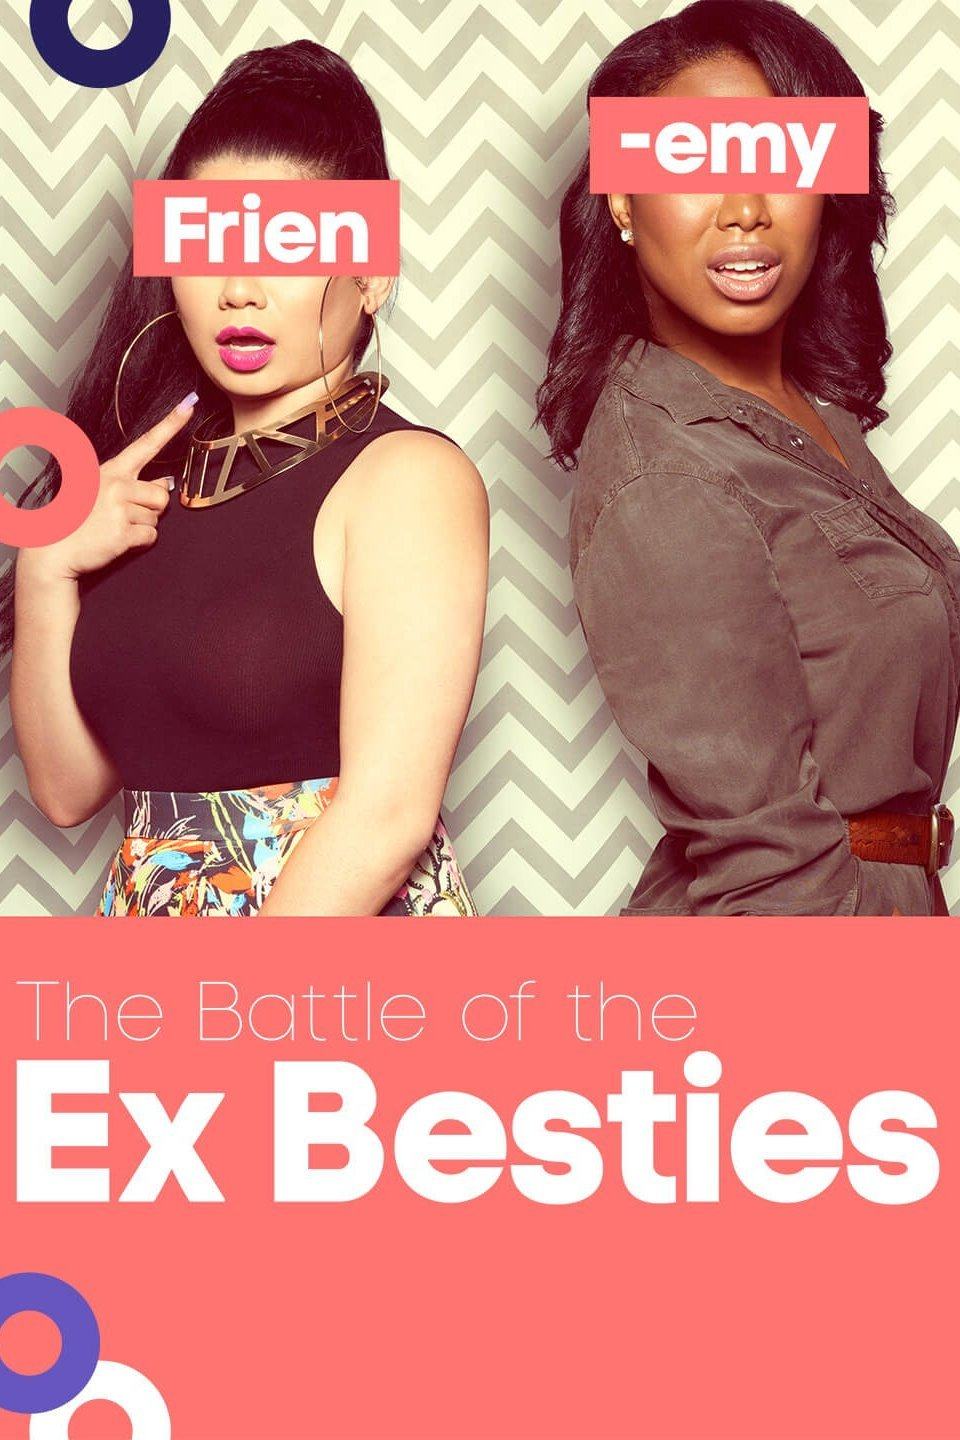 The Battle of the Ex Besties - Season 1